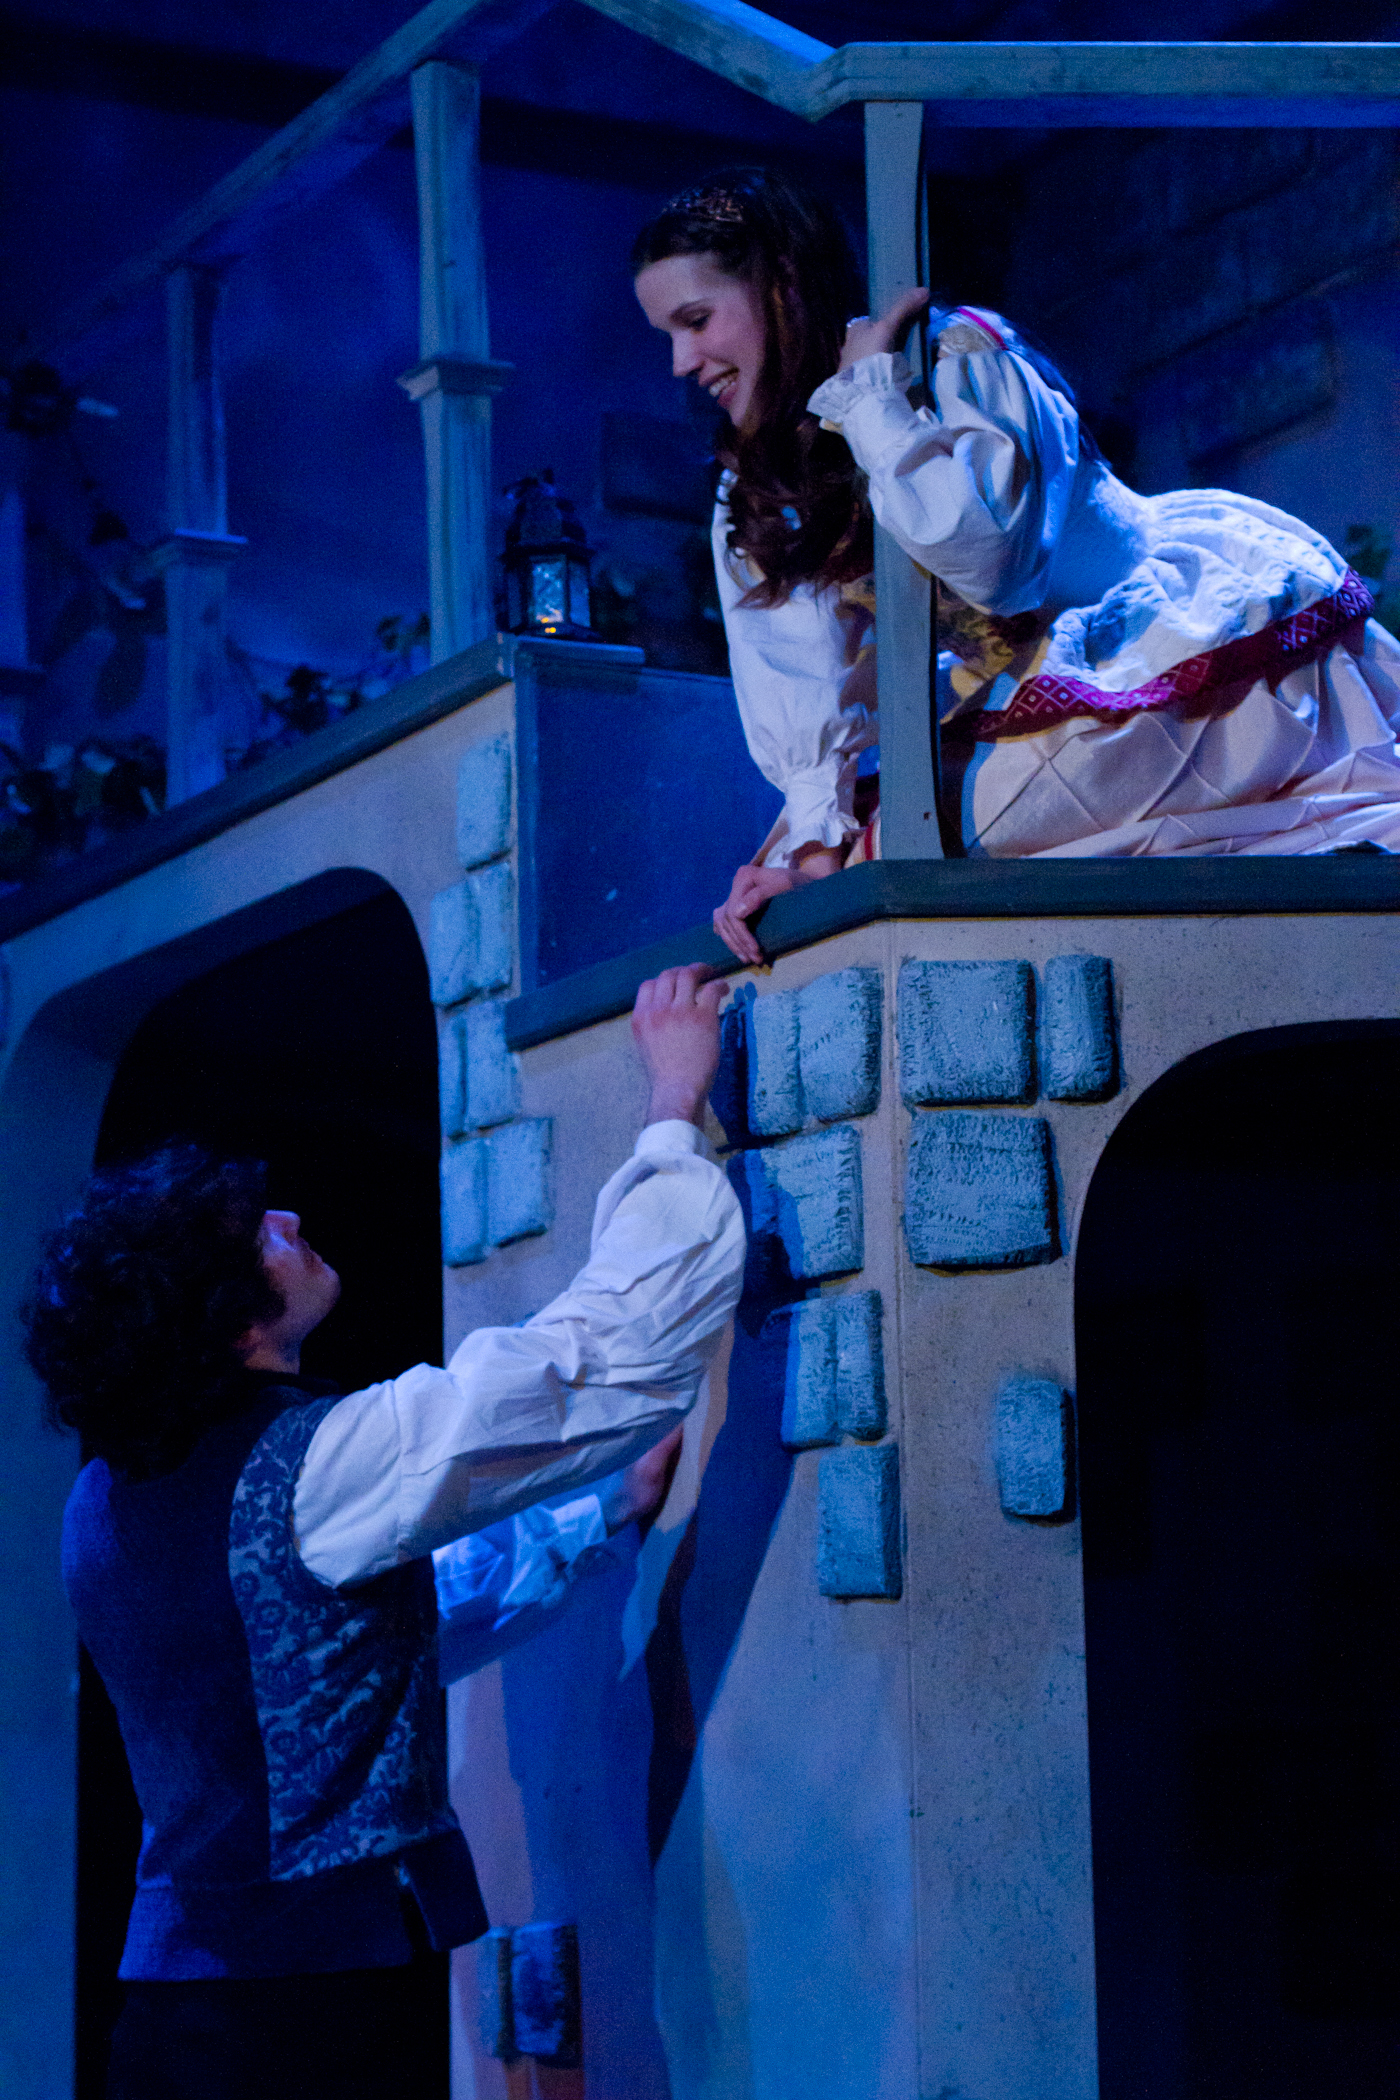 Romeo and juliet balcony scene 2017 - dcaim.com.